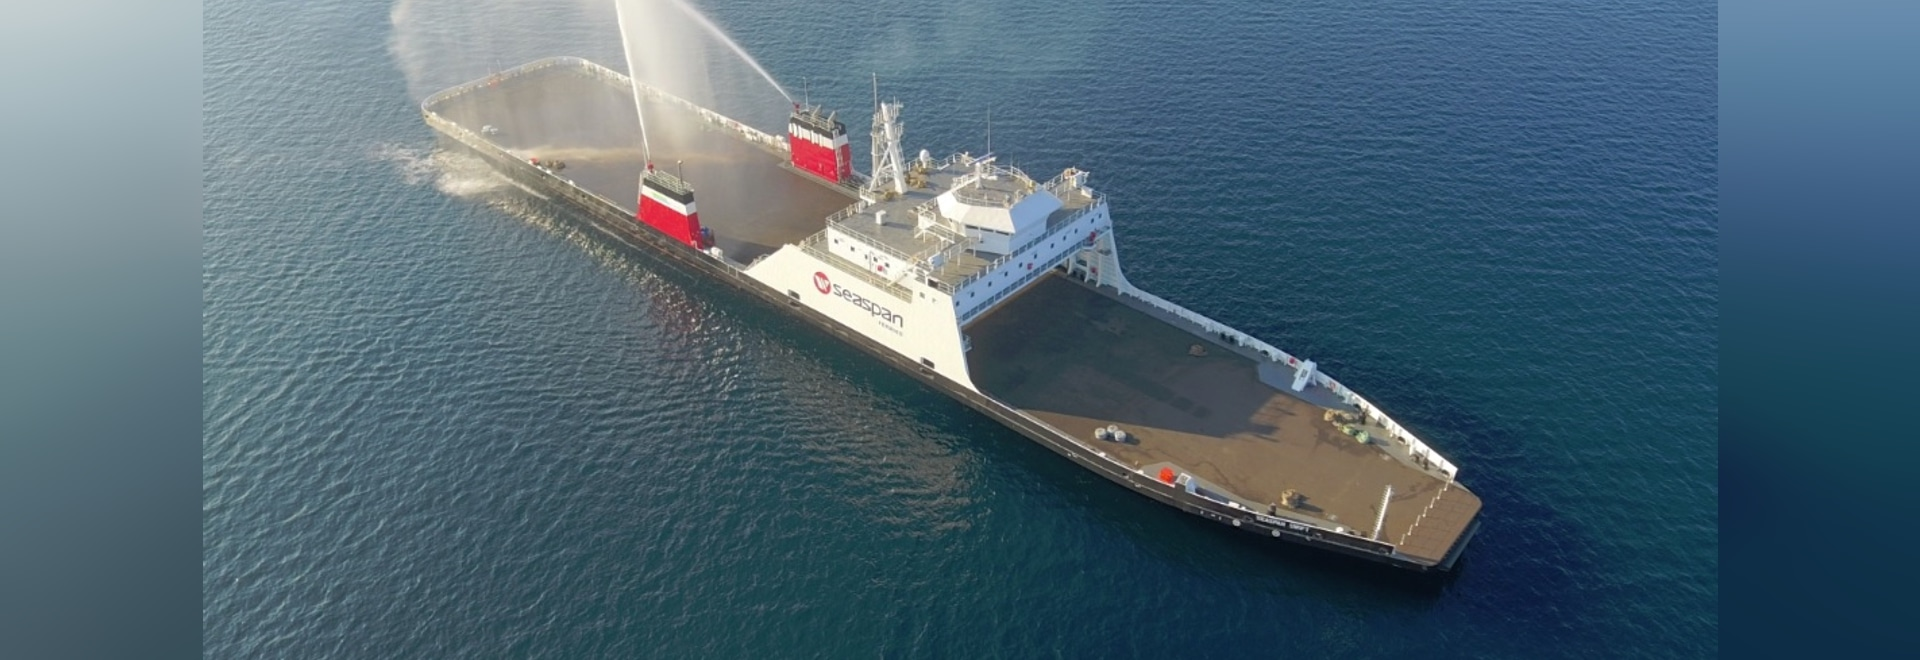 Seaspan LNG battery hybrid ferry claims many firsts